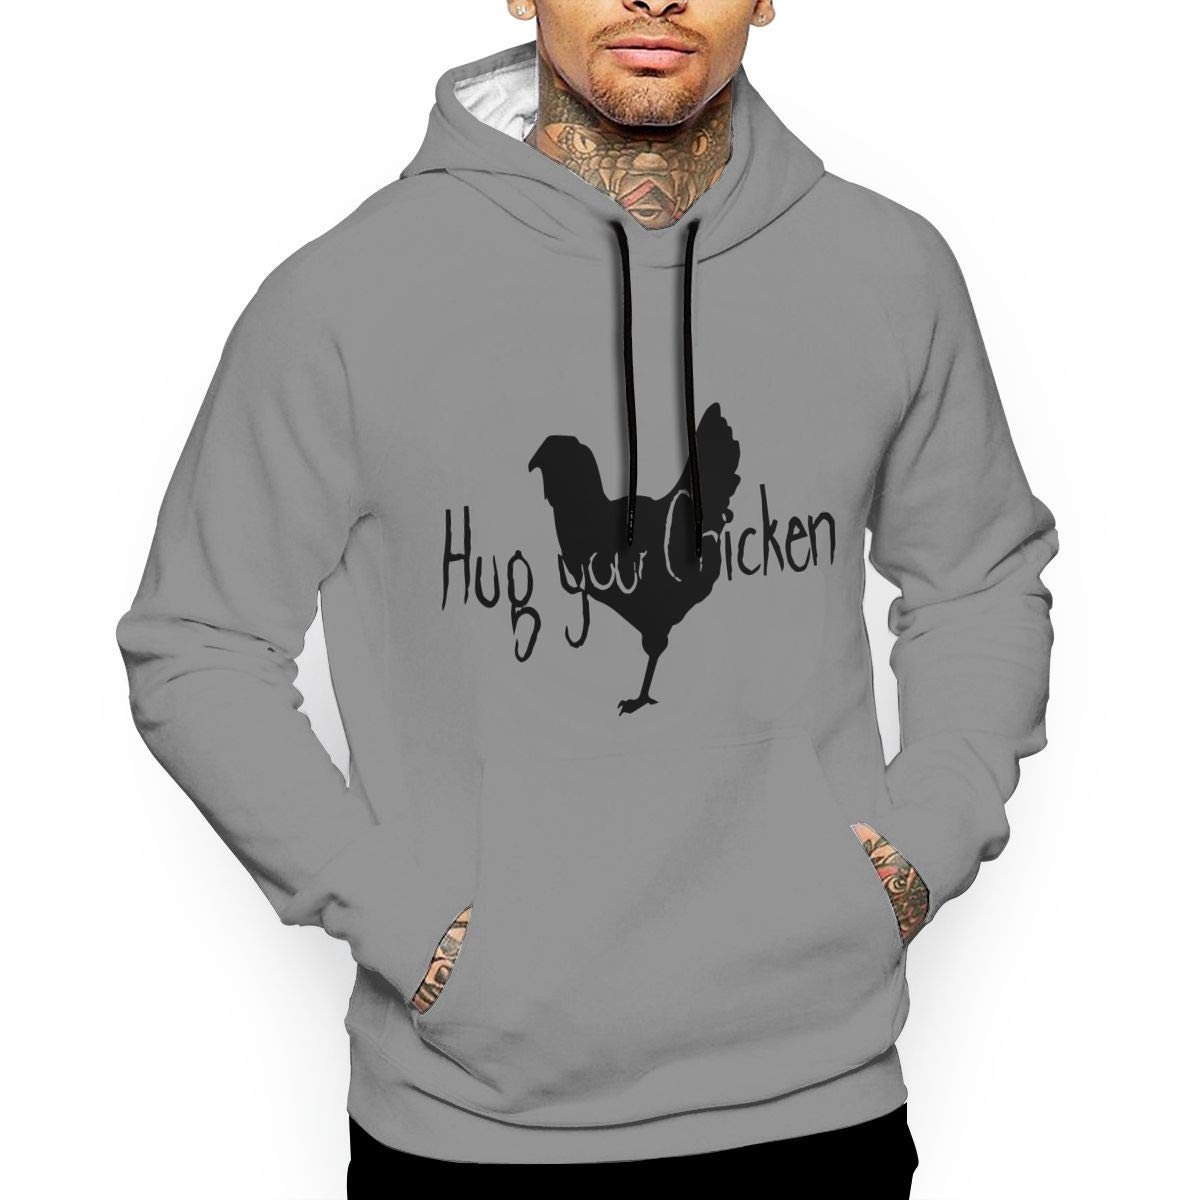 Ou50IL@WY Mens Hug Your Chicken Pullover Hoodie Comfortable Cotton Sweatshirt with Pocket for Men